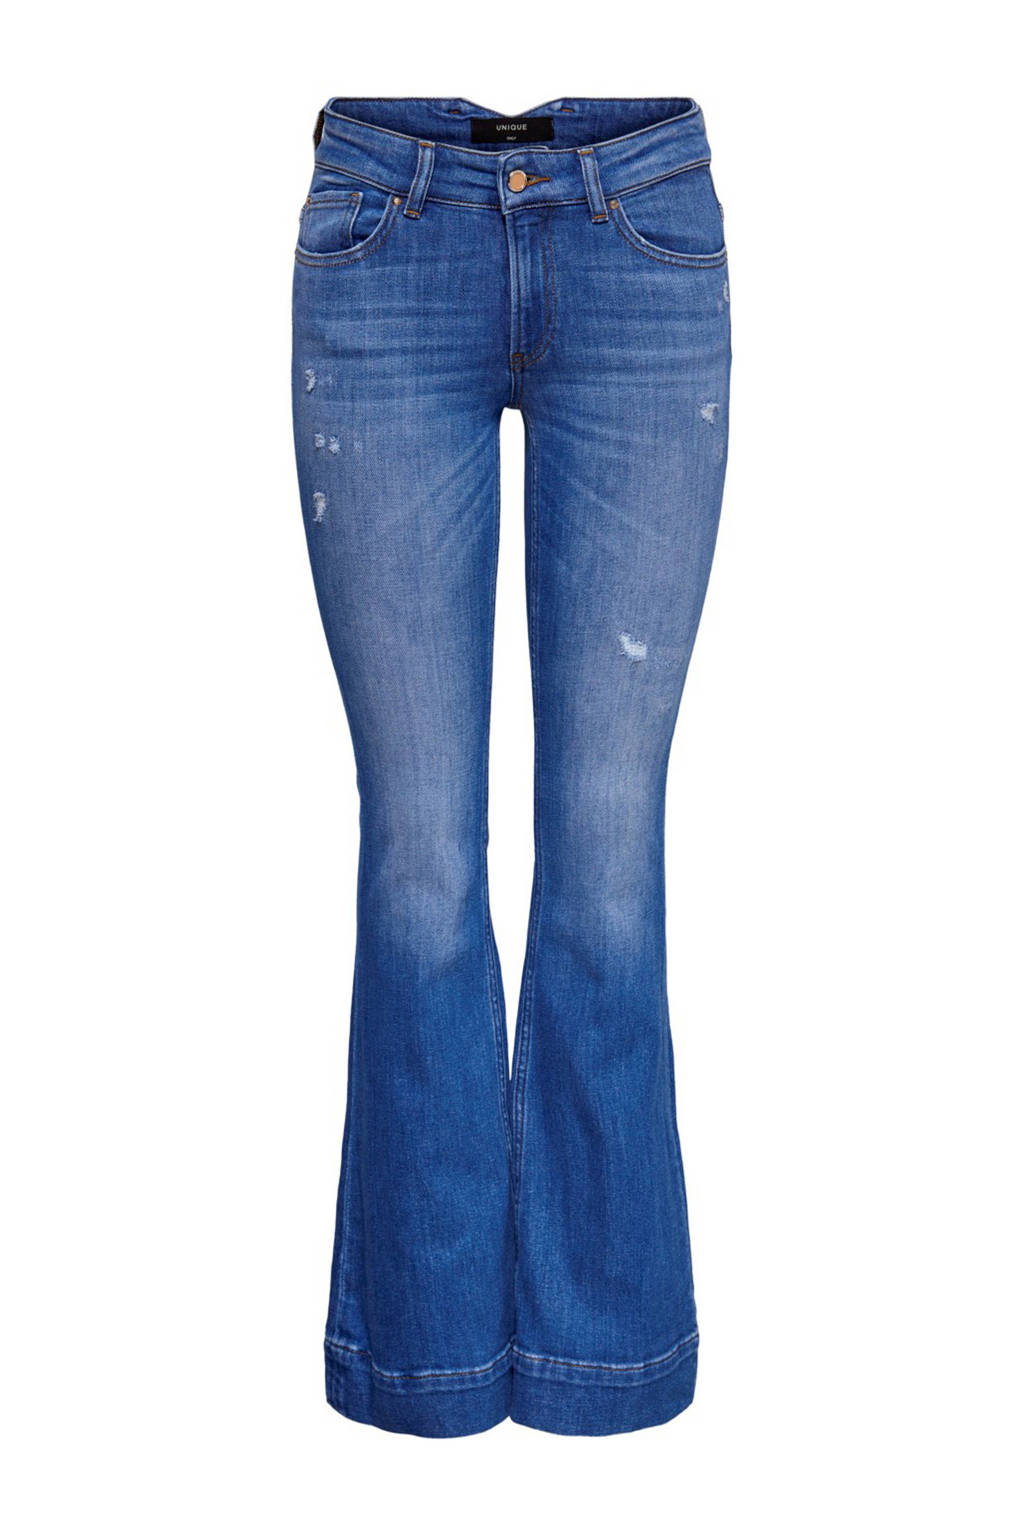 ONLY flared jeans blauw, Blauw